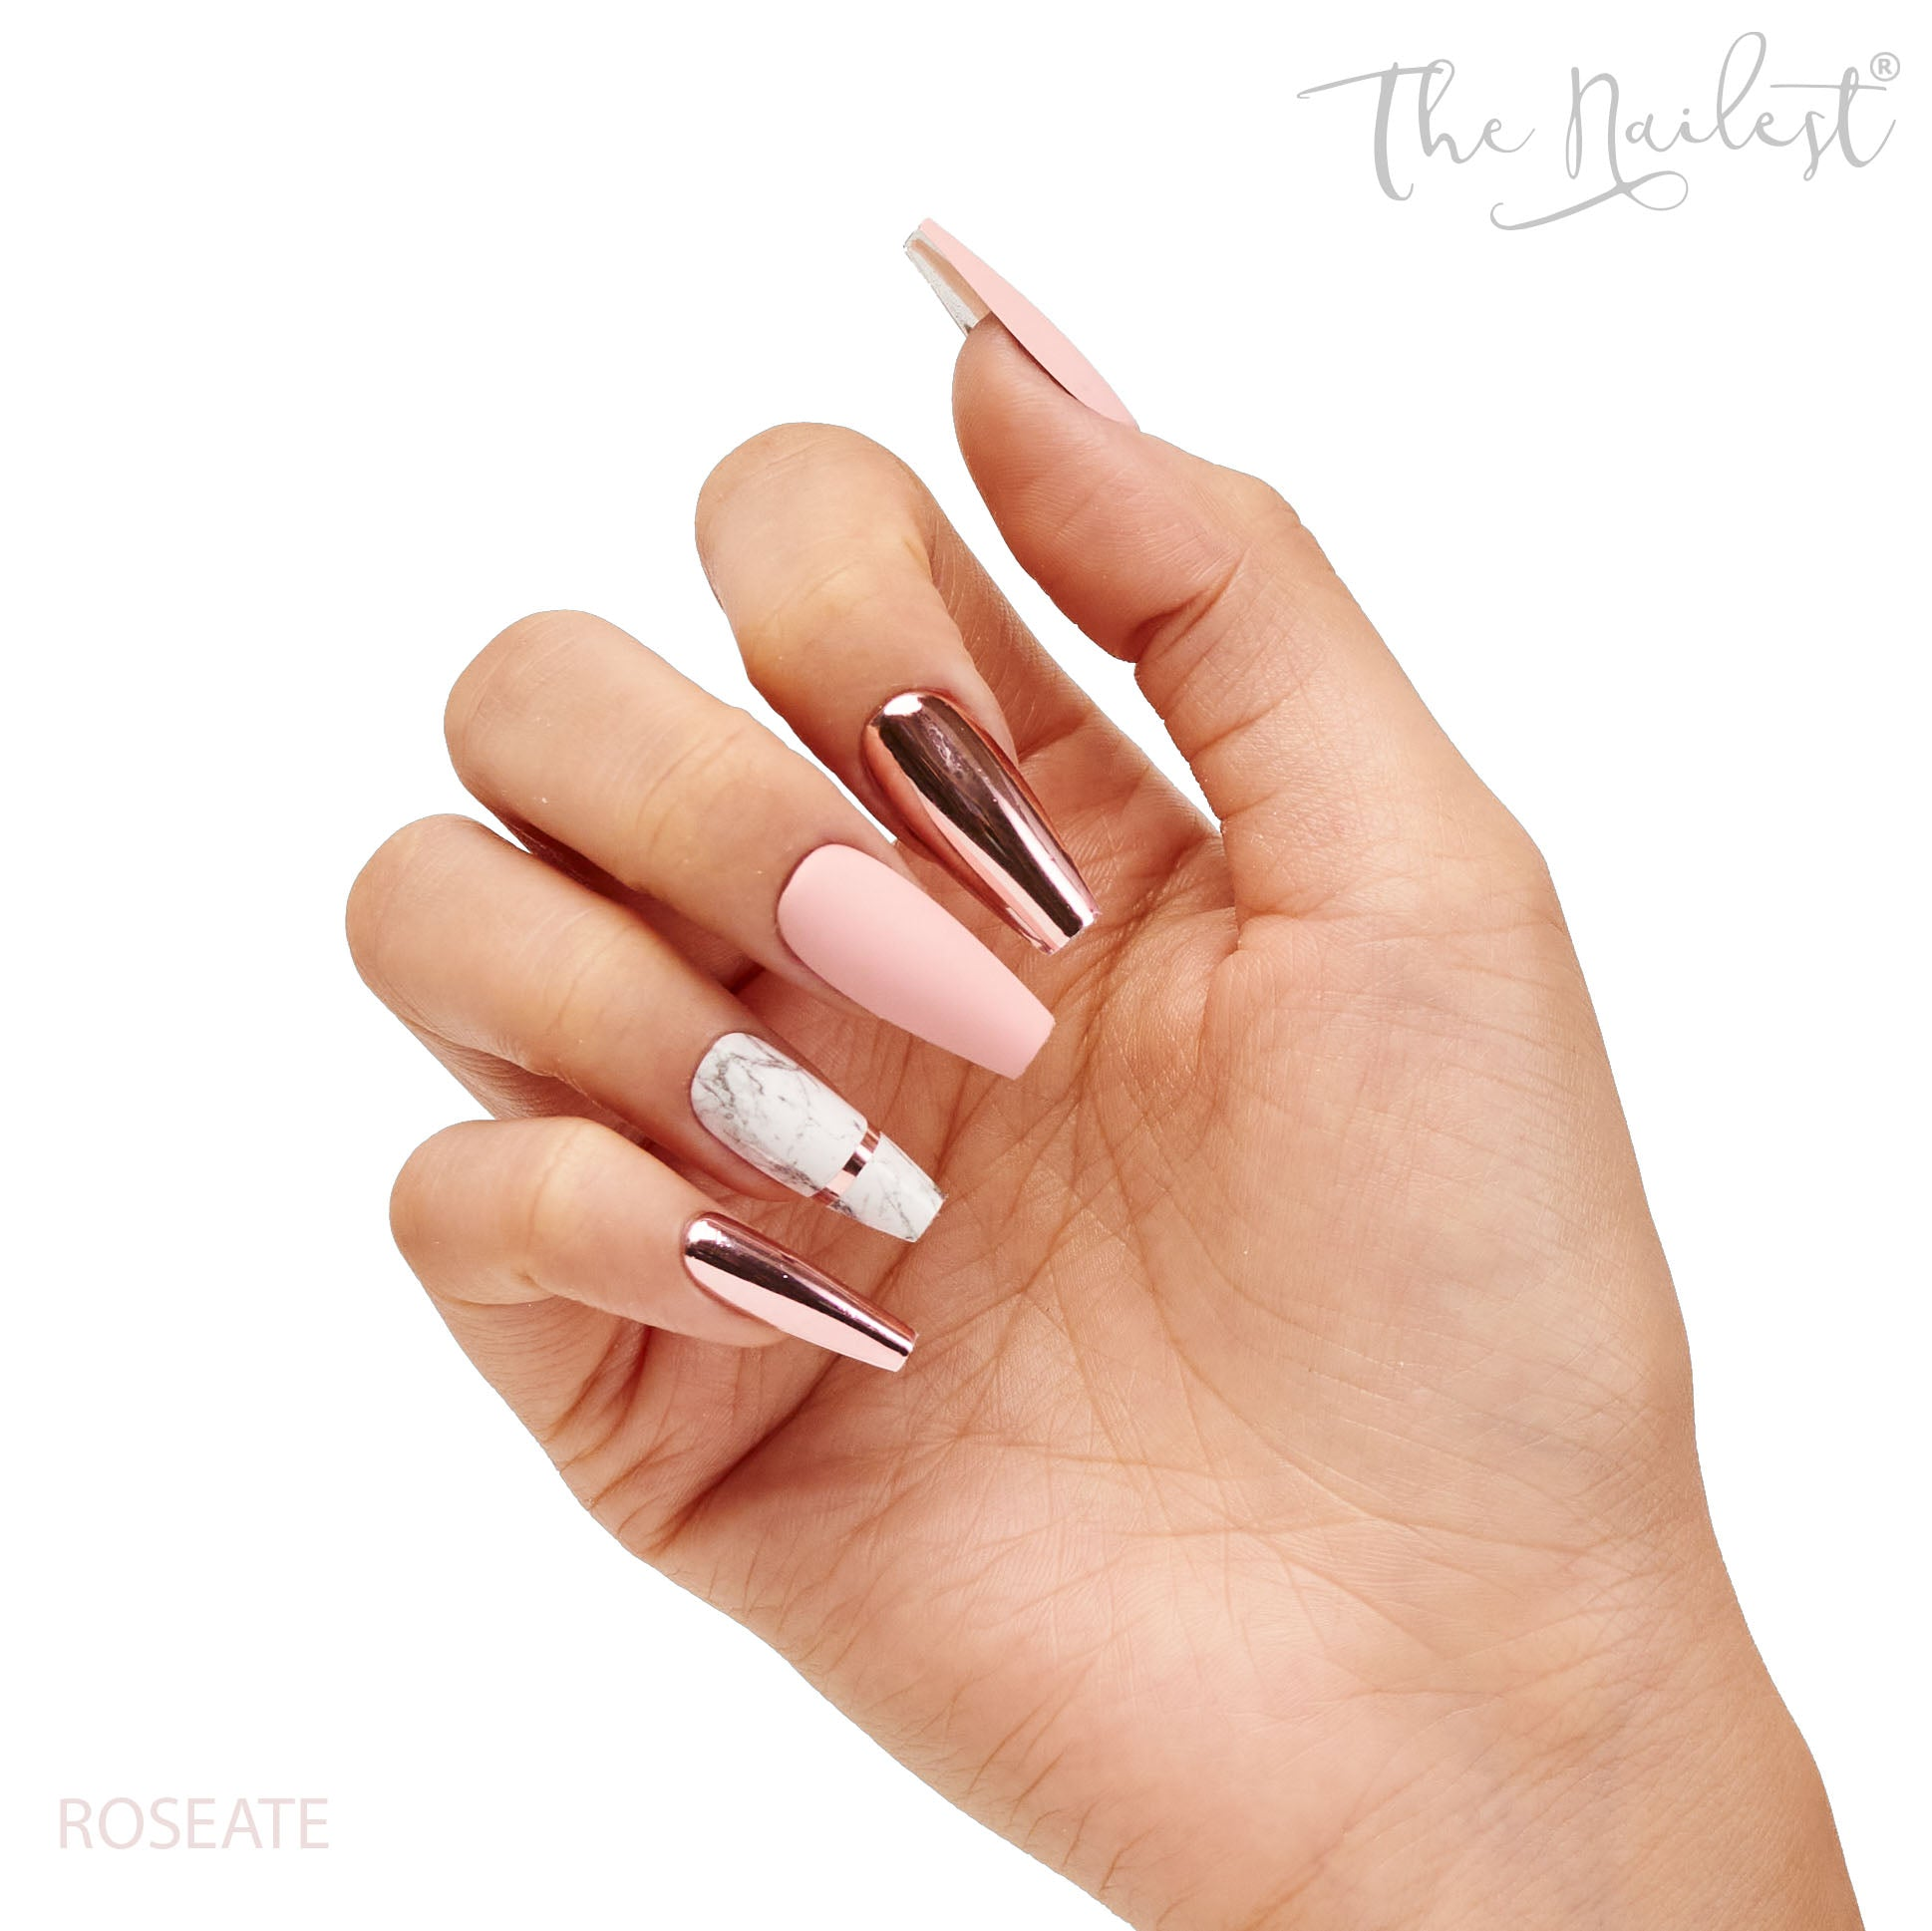 INSTANT LUXURY ACRYLIC PRESS ON NAILS- ROSEATE